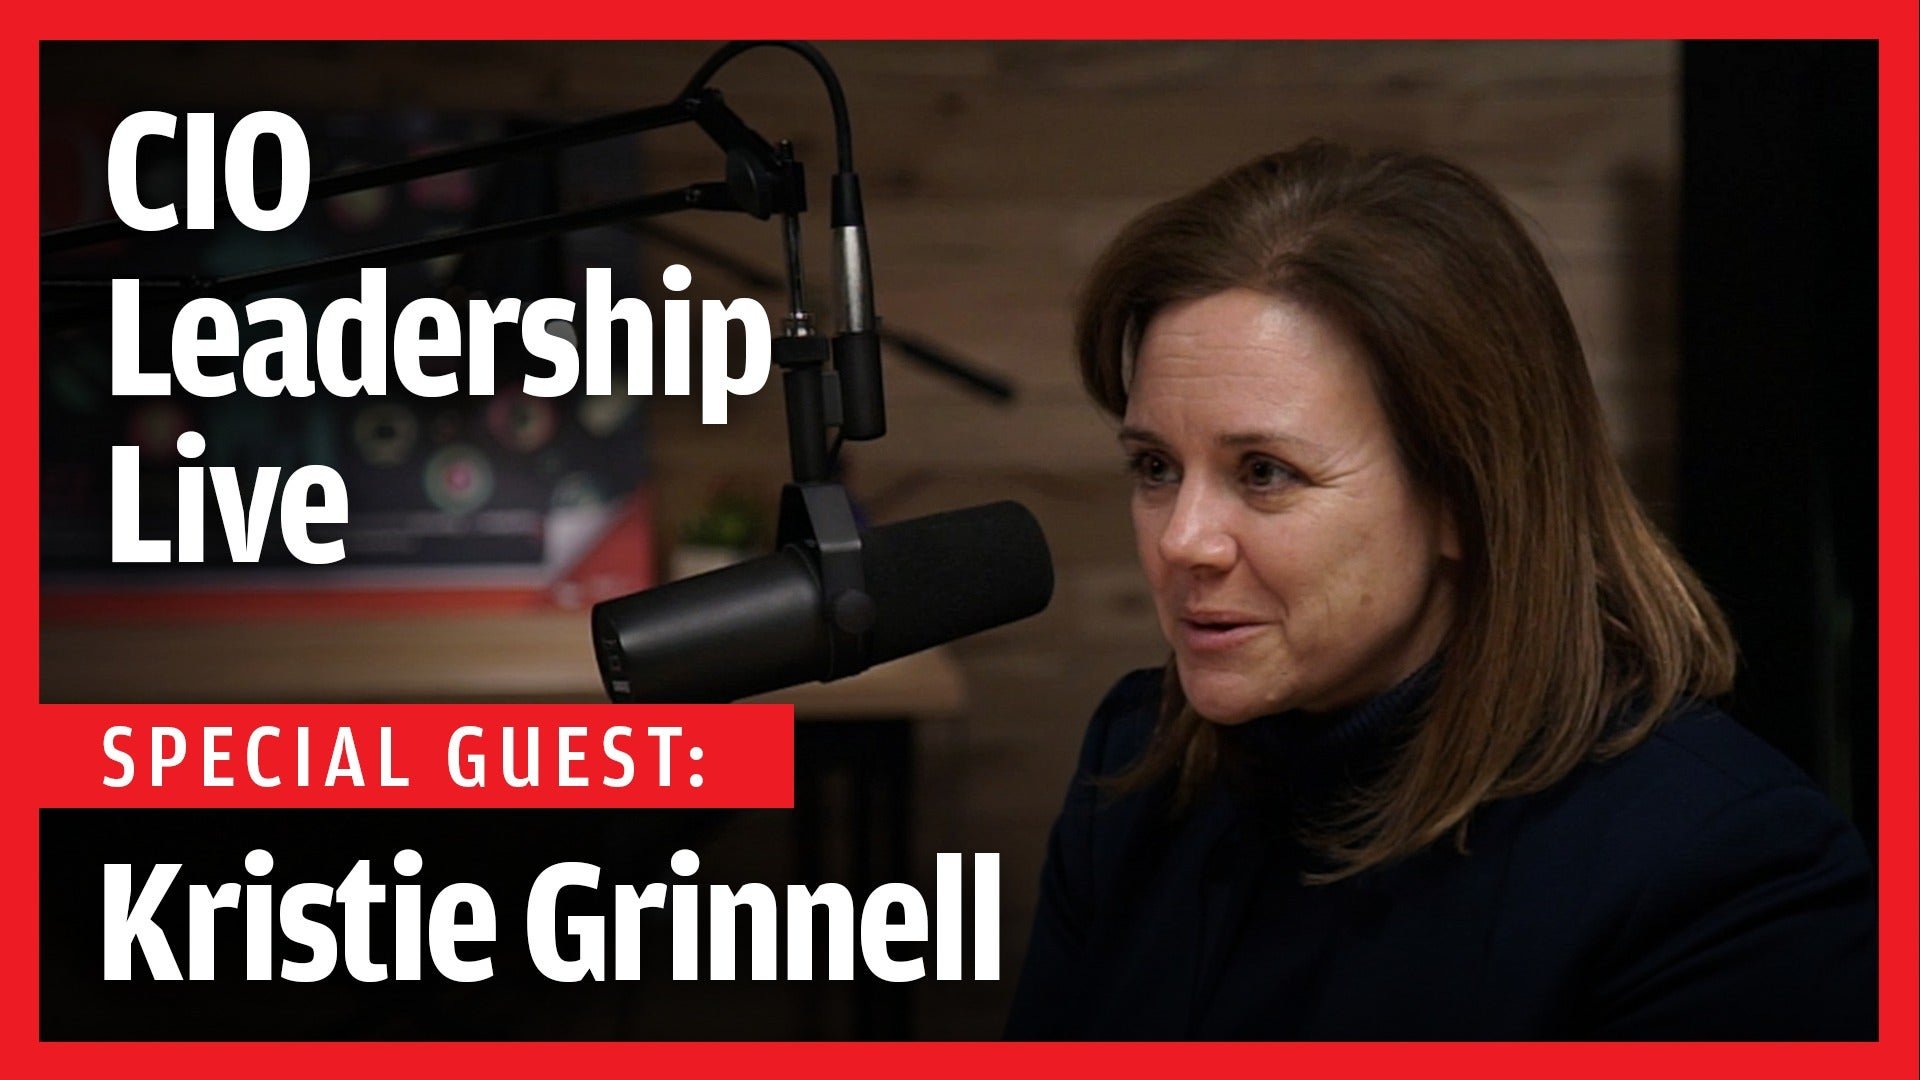 CIO Leadership Live with Kristie Grinnell, CIO & VP IT at